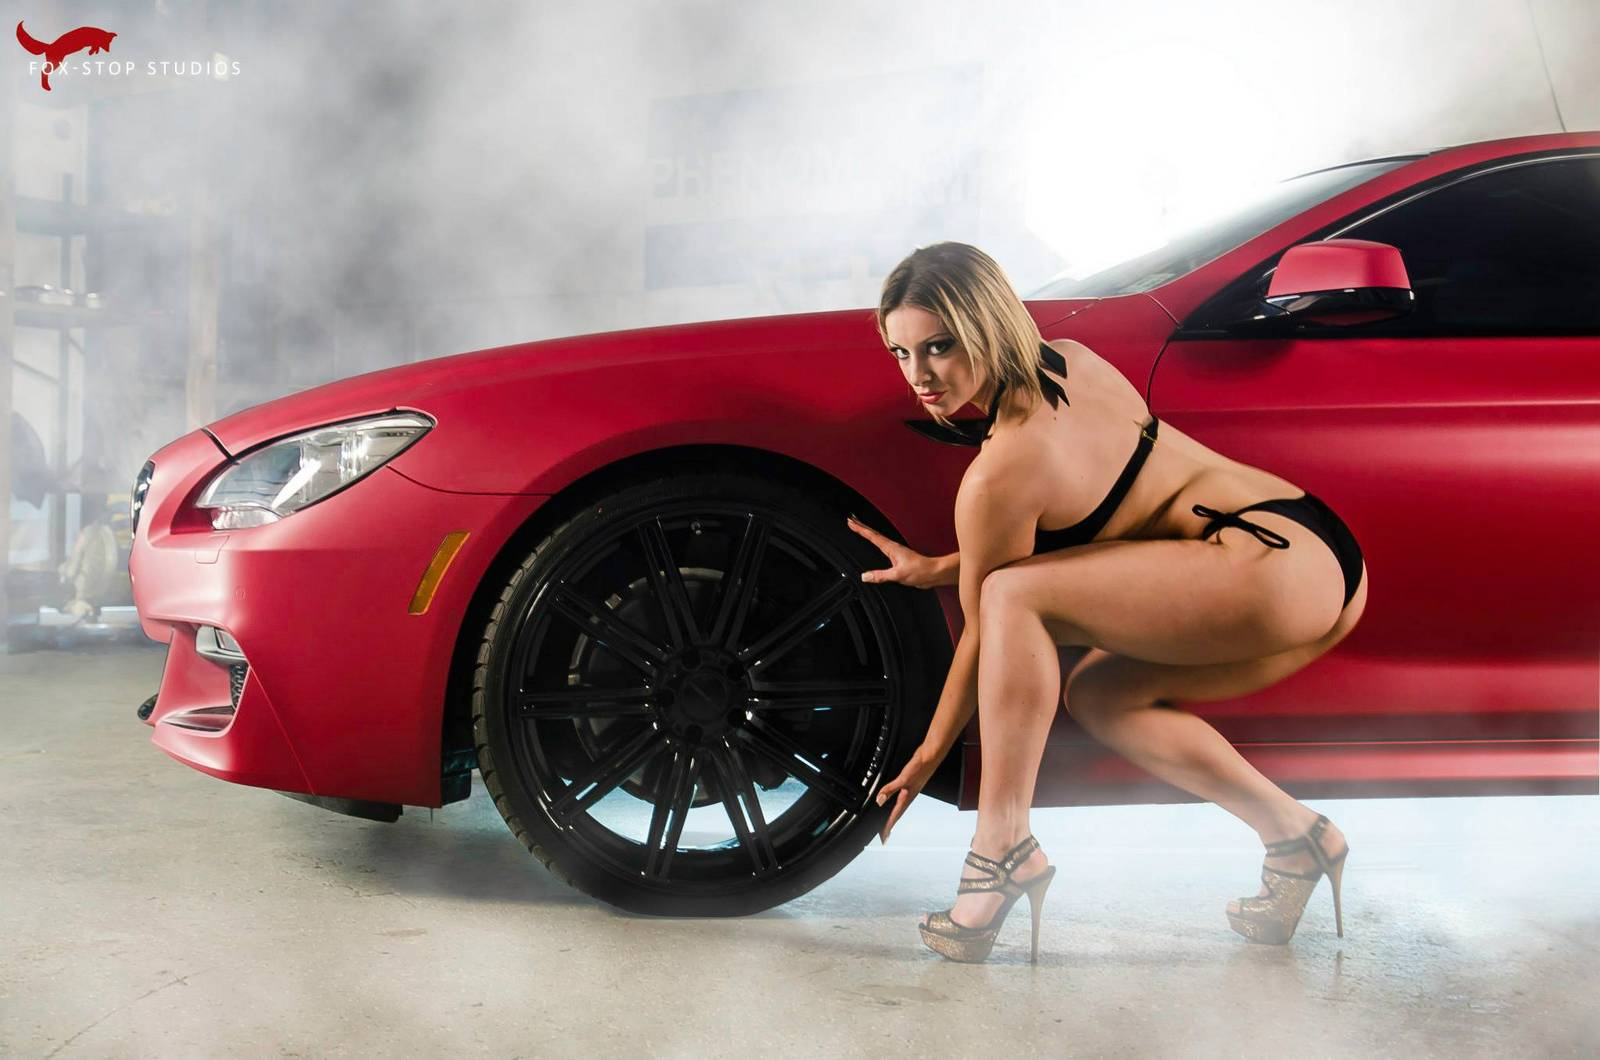 Matte-Cherry-Red-BMW-6-Series-Photoshoot-with-Sexy-Models-by-Phenomenal-Vinyl-3